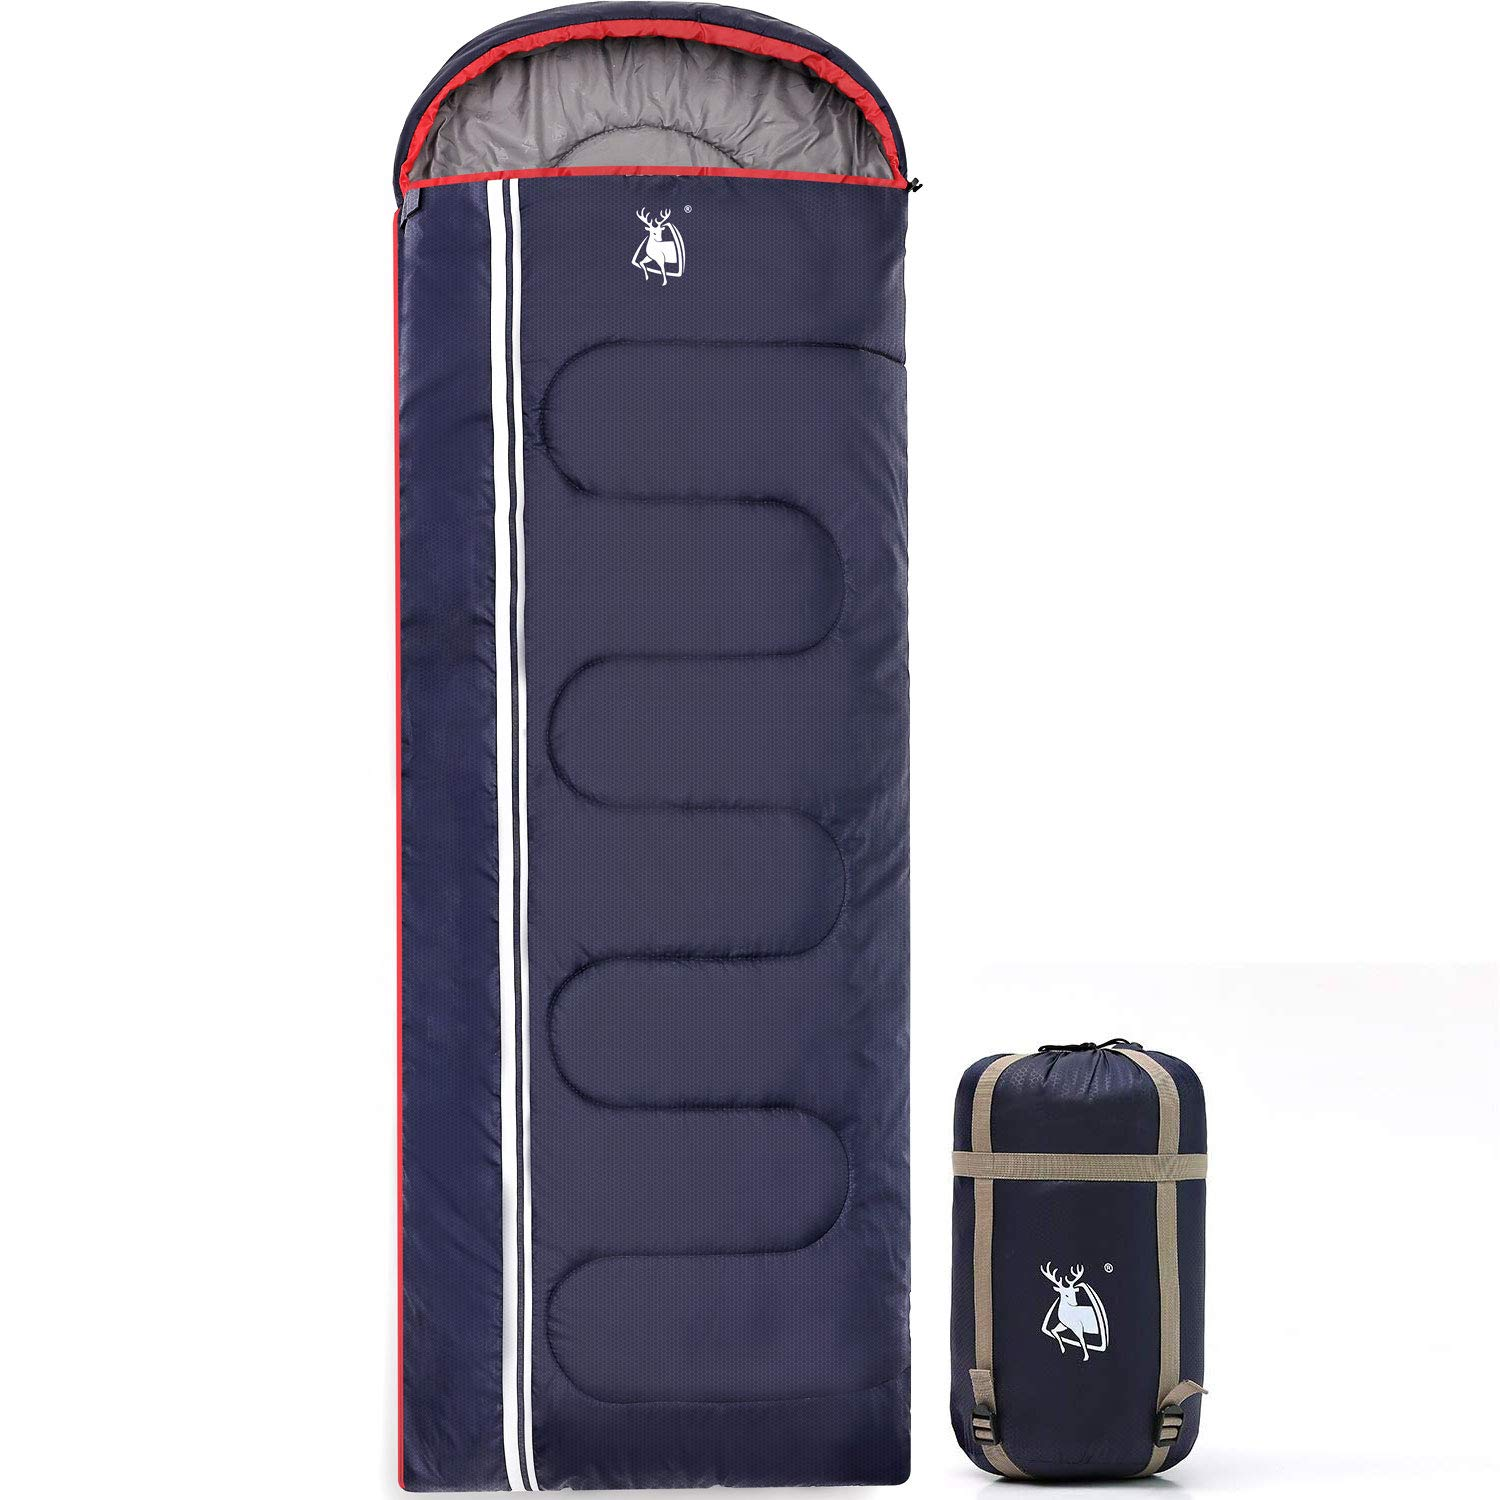 HUI LINGYANG Camping Sleeping Bag -Portable, Waterproof, Compact Lightweight-Great for Outdoor,Traveling, Backpacking Hiking